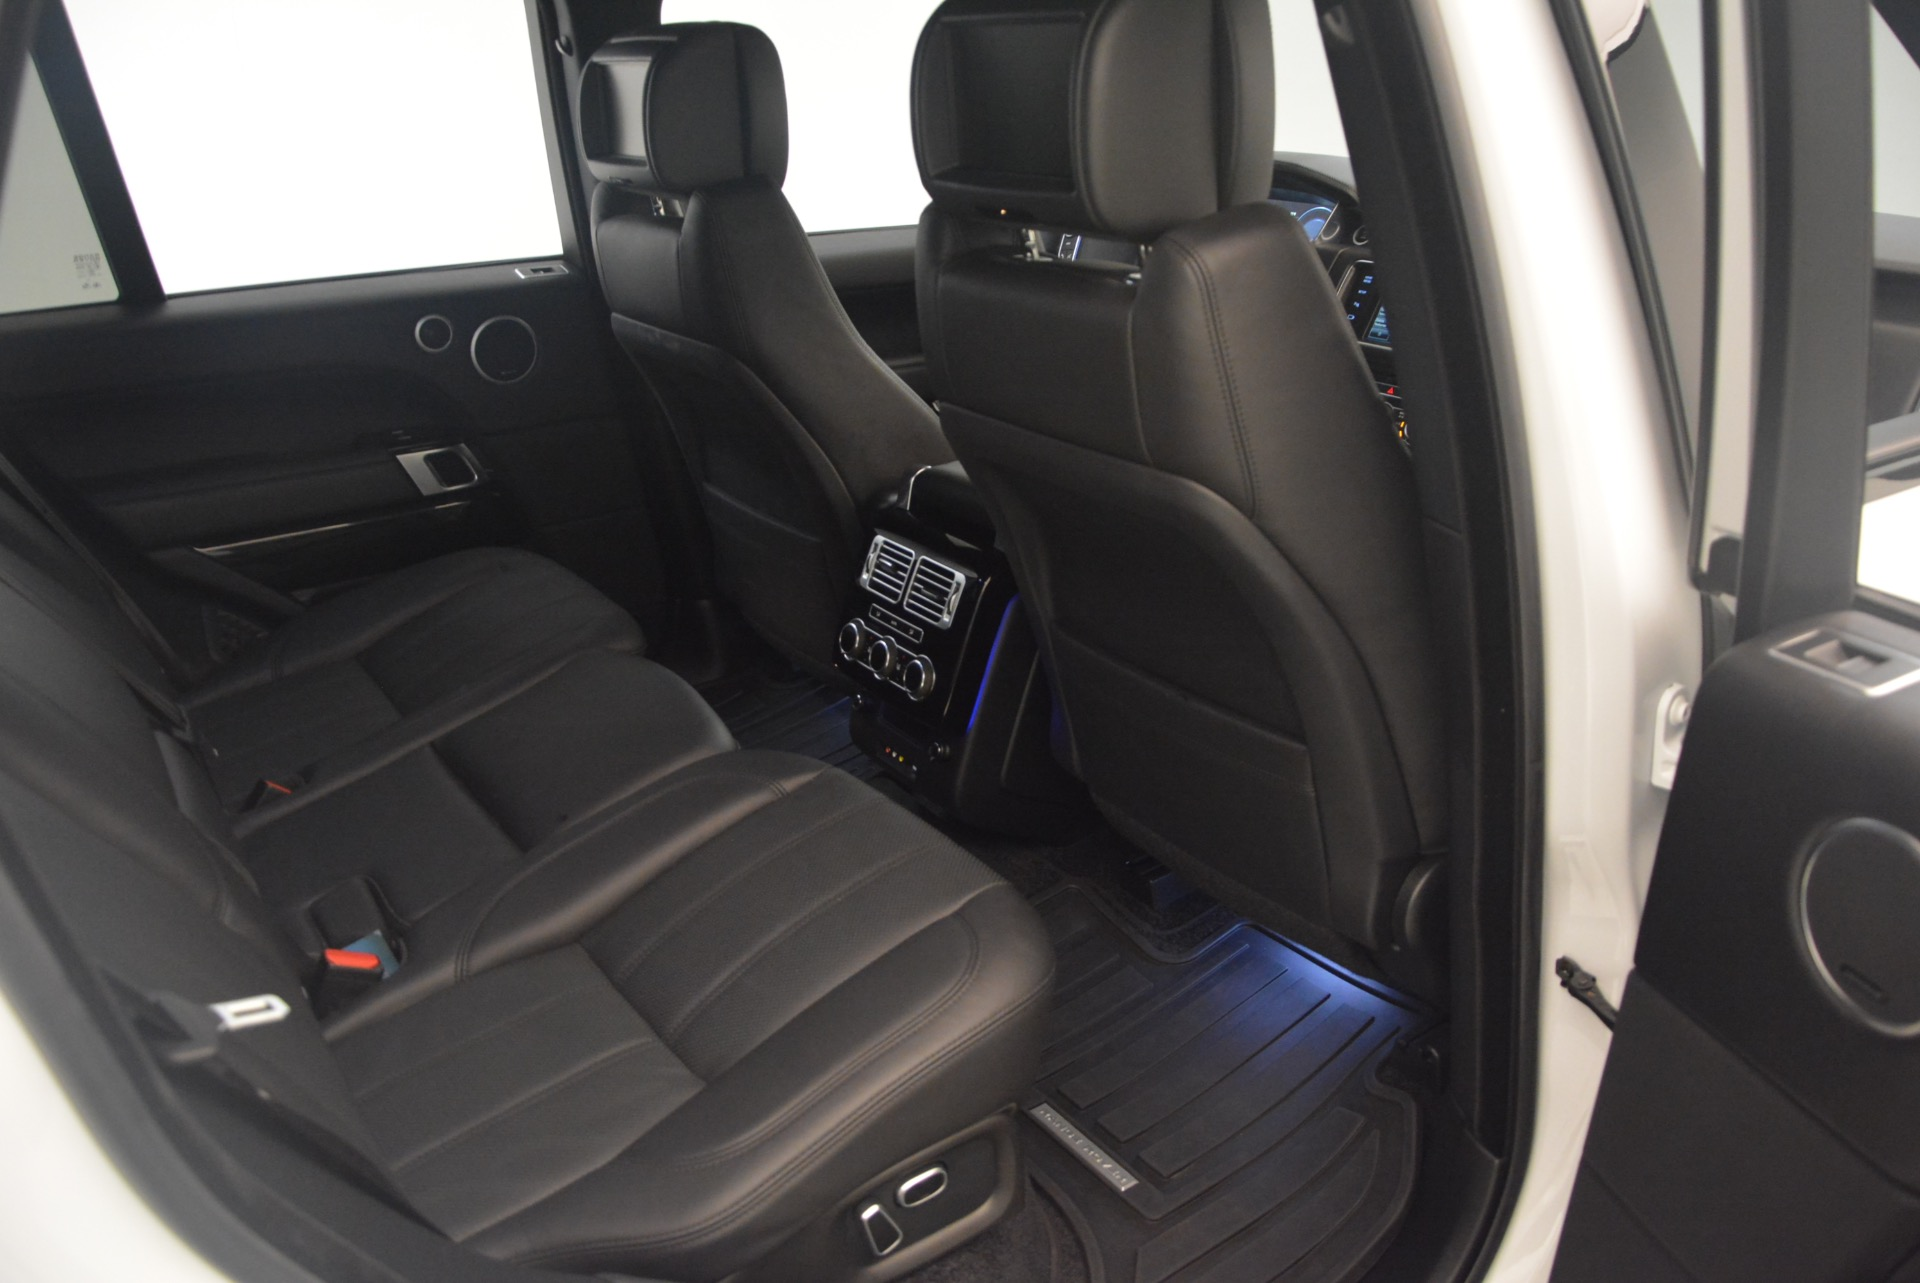 Used 2015 Land Rover Range Rover Supercharged For Sale In Greenwich, CT 1292_p35